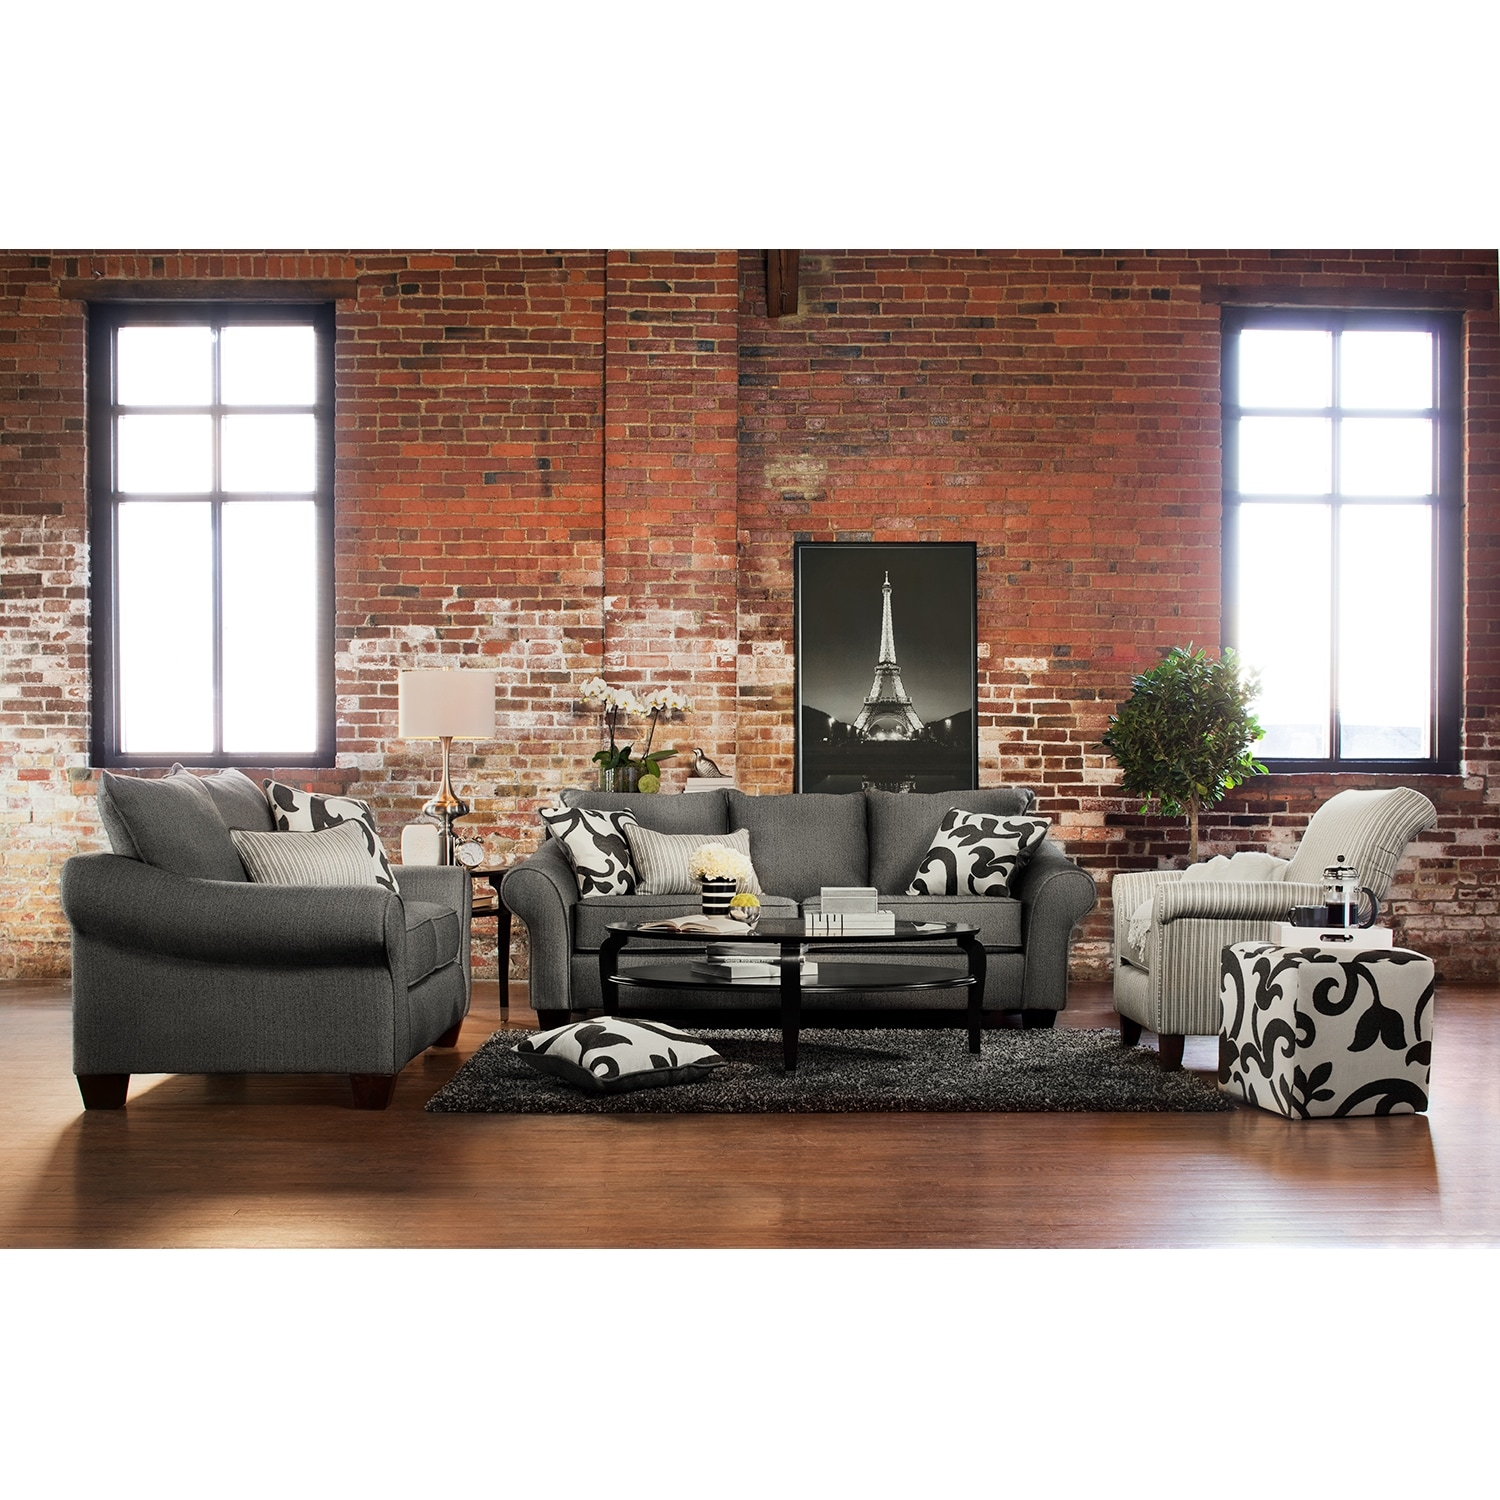 Colette Sofa, Loveseat And Accent Chair Set - Gray